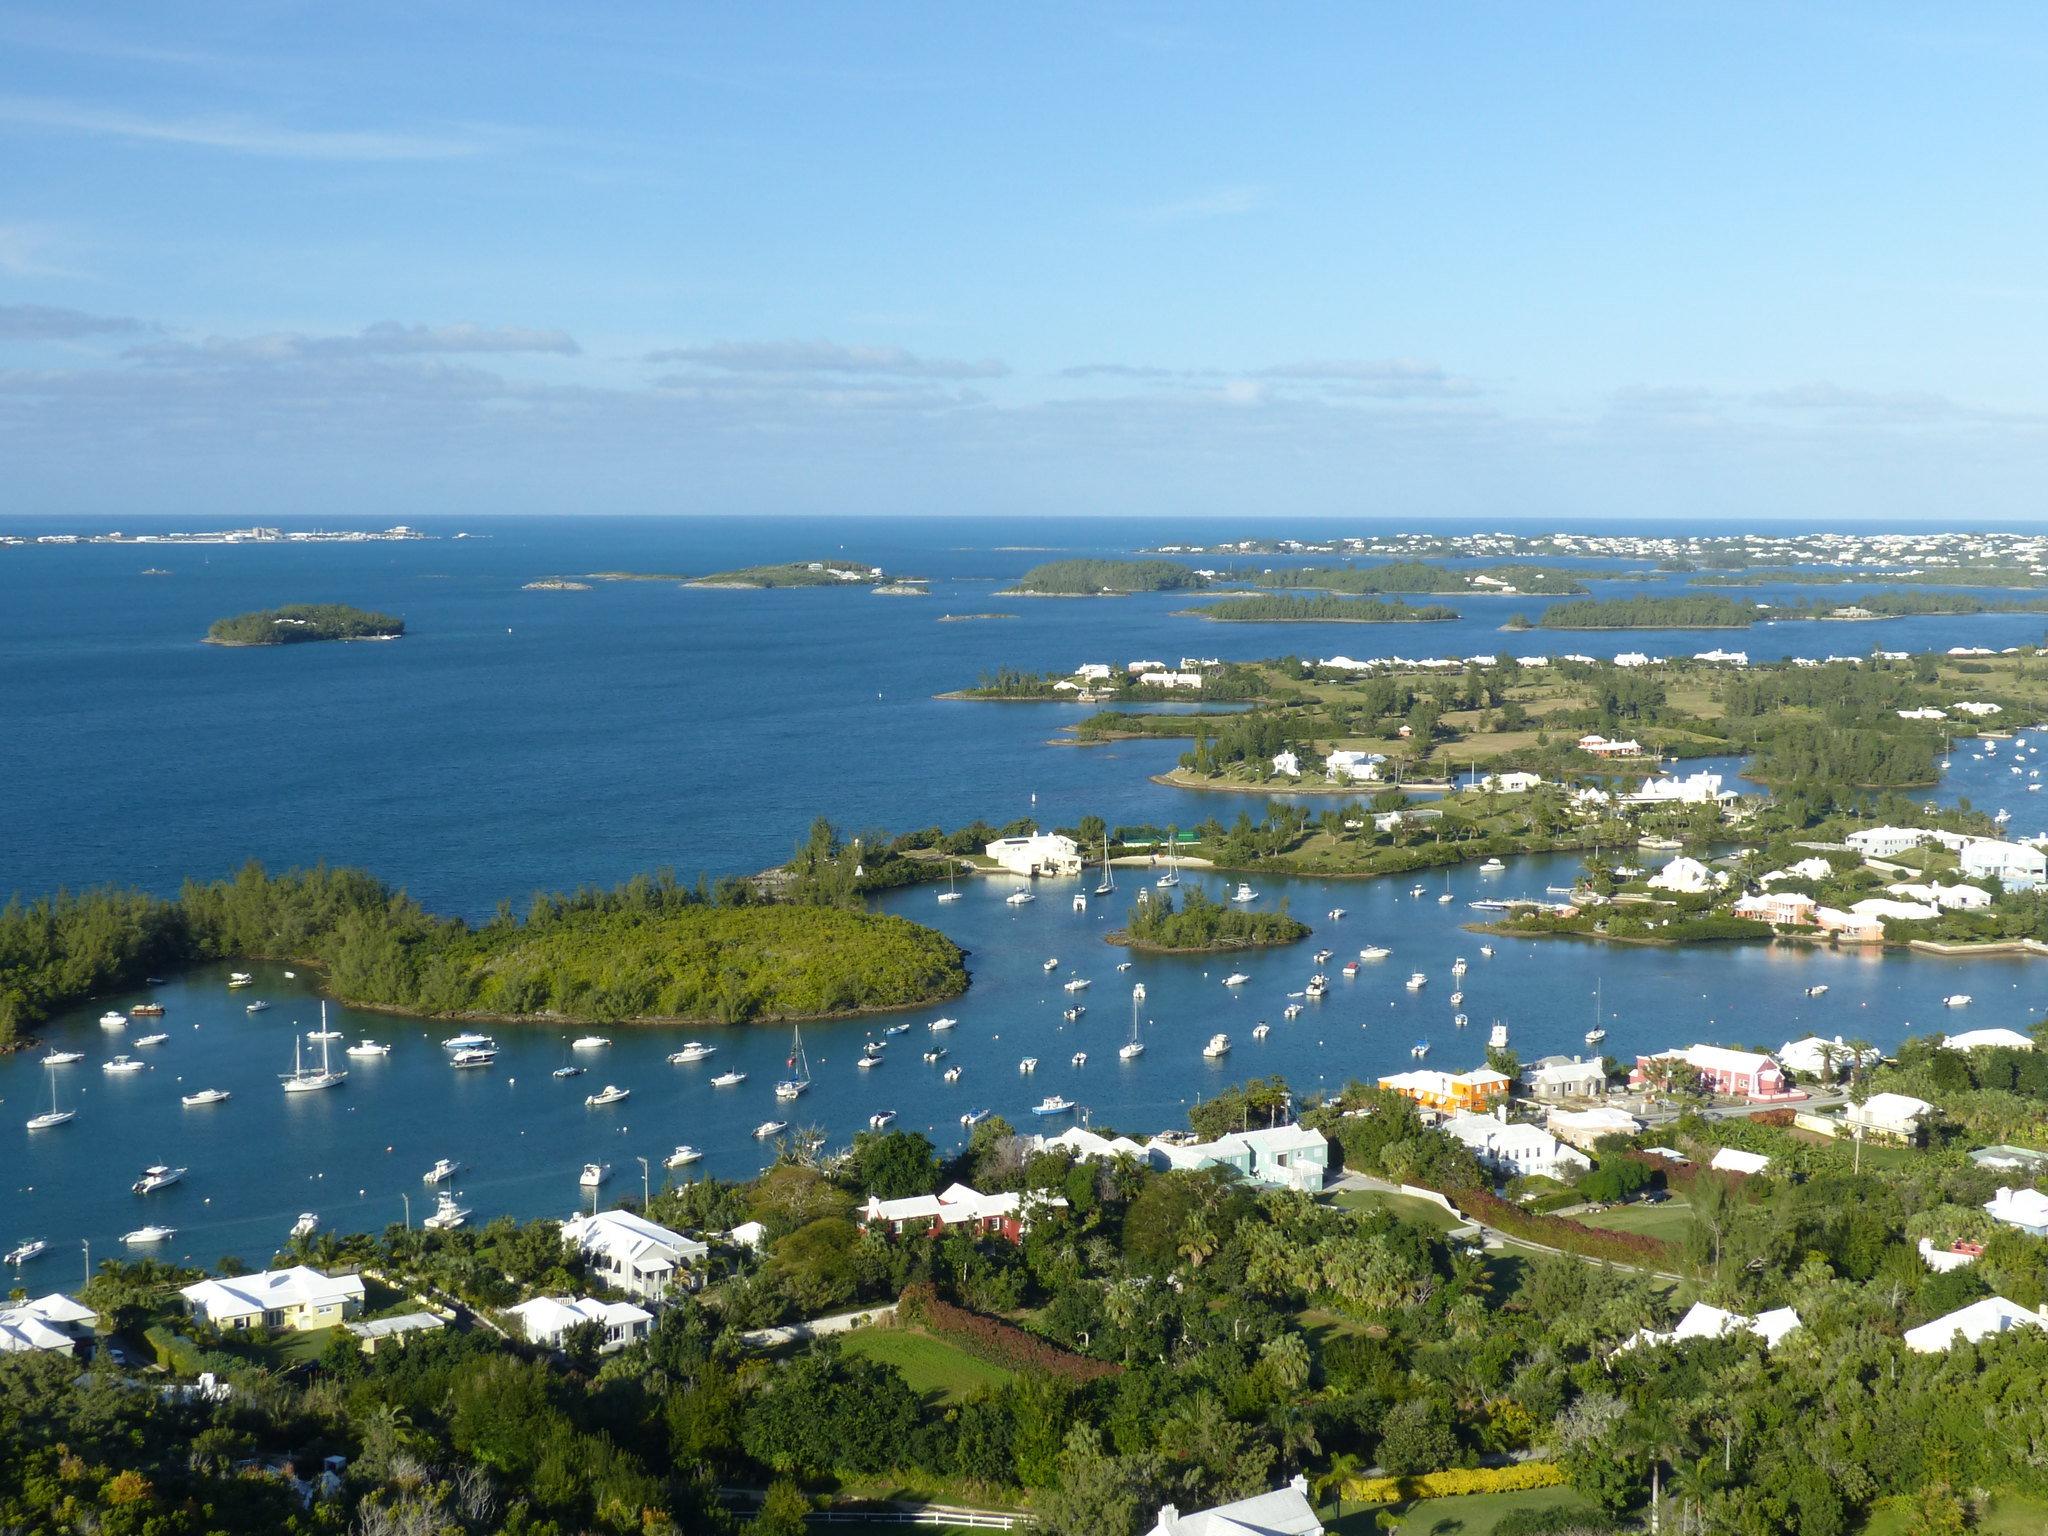 Views from Gibbs Hill Lighthouse